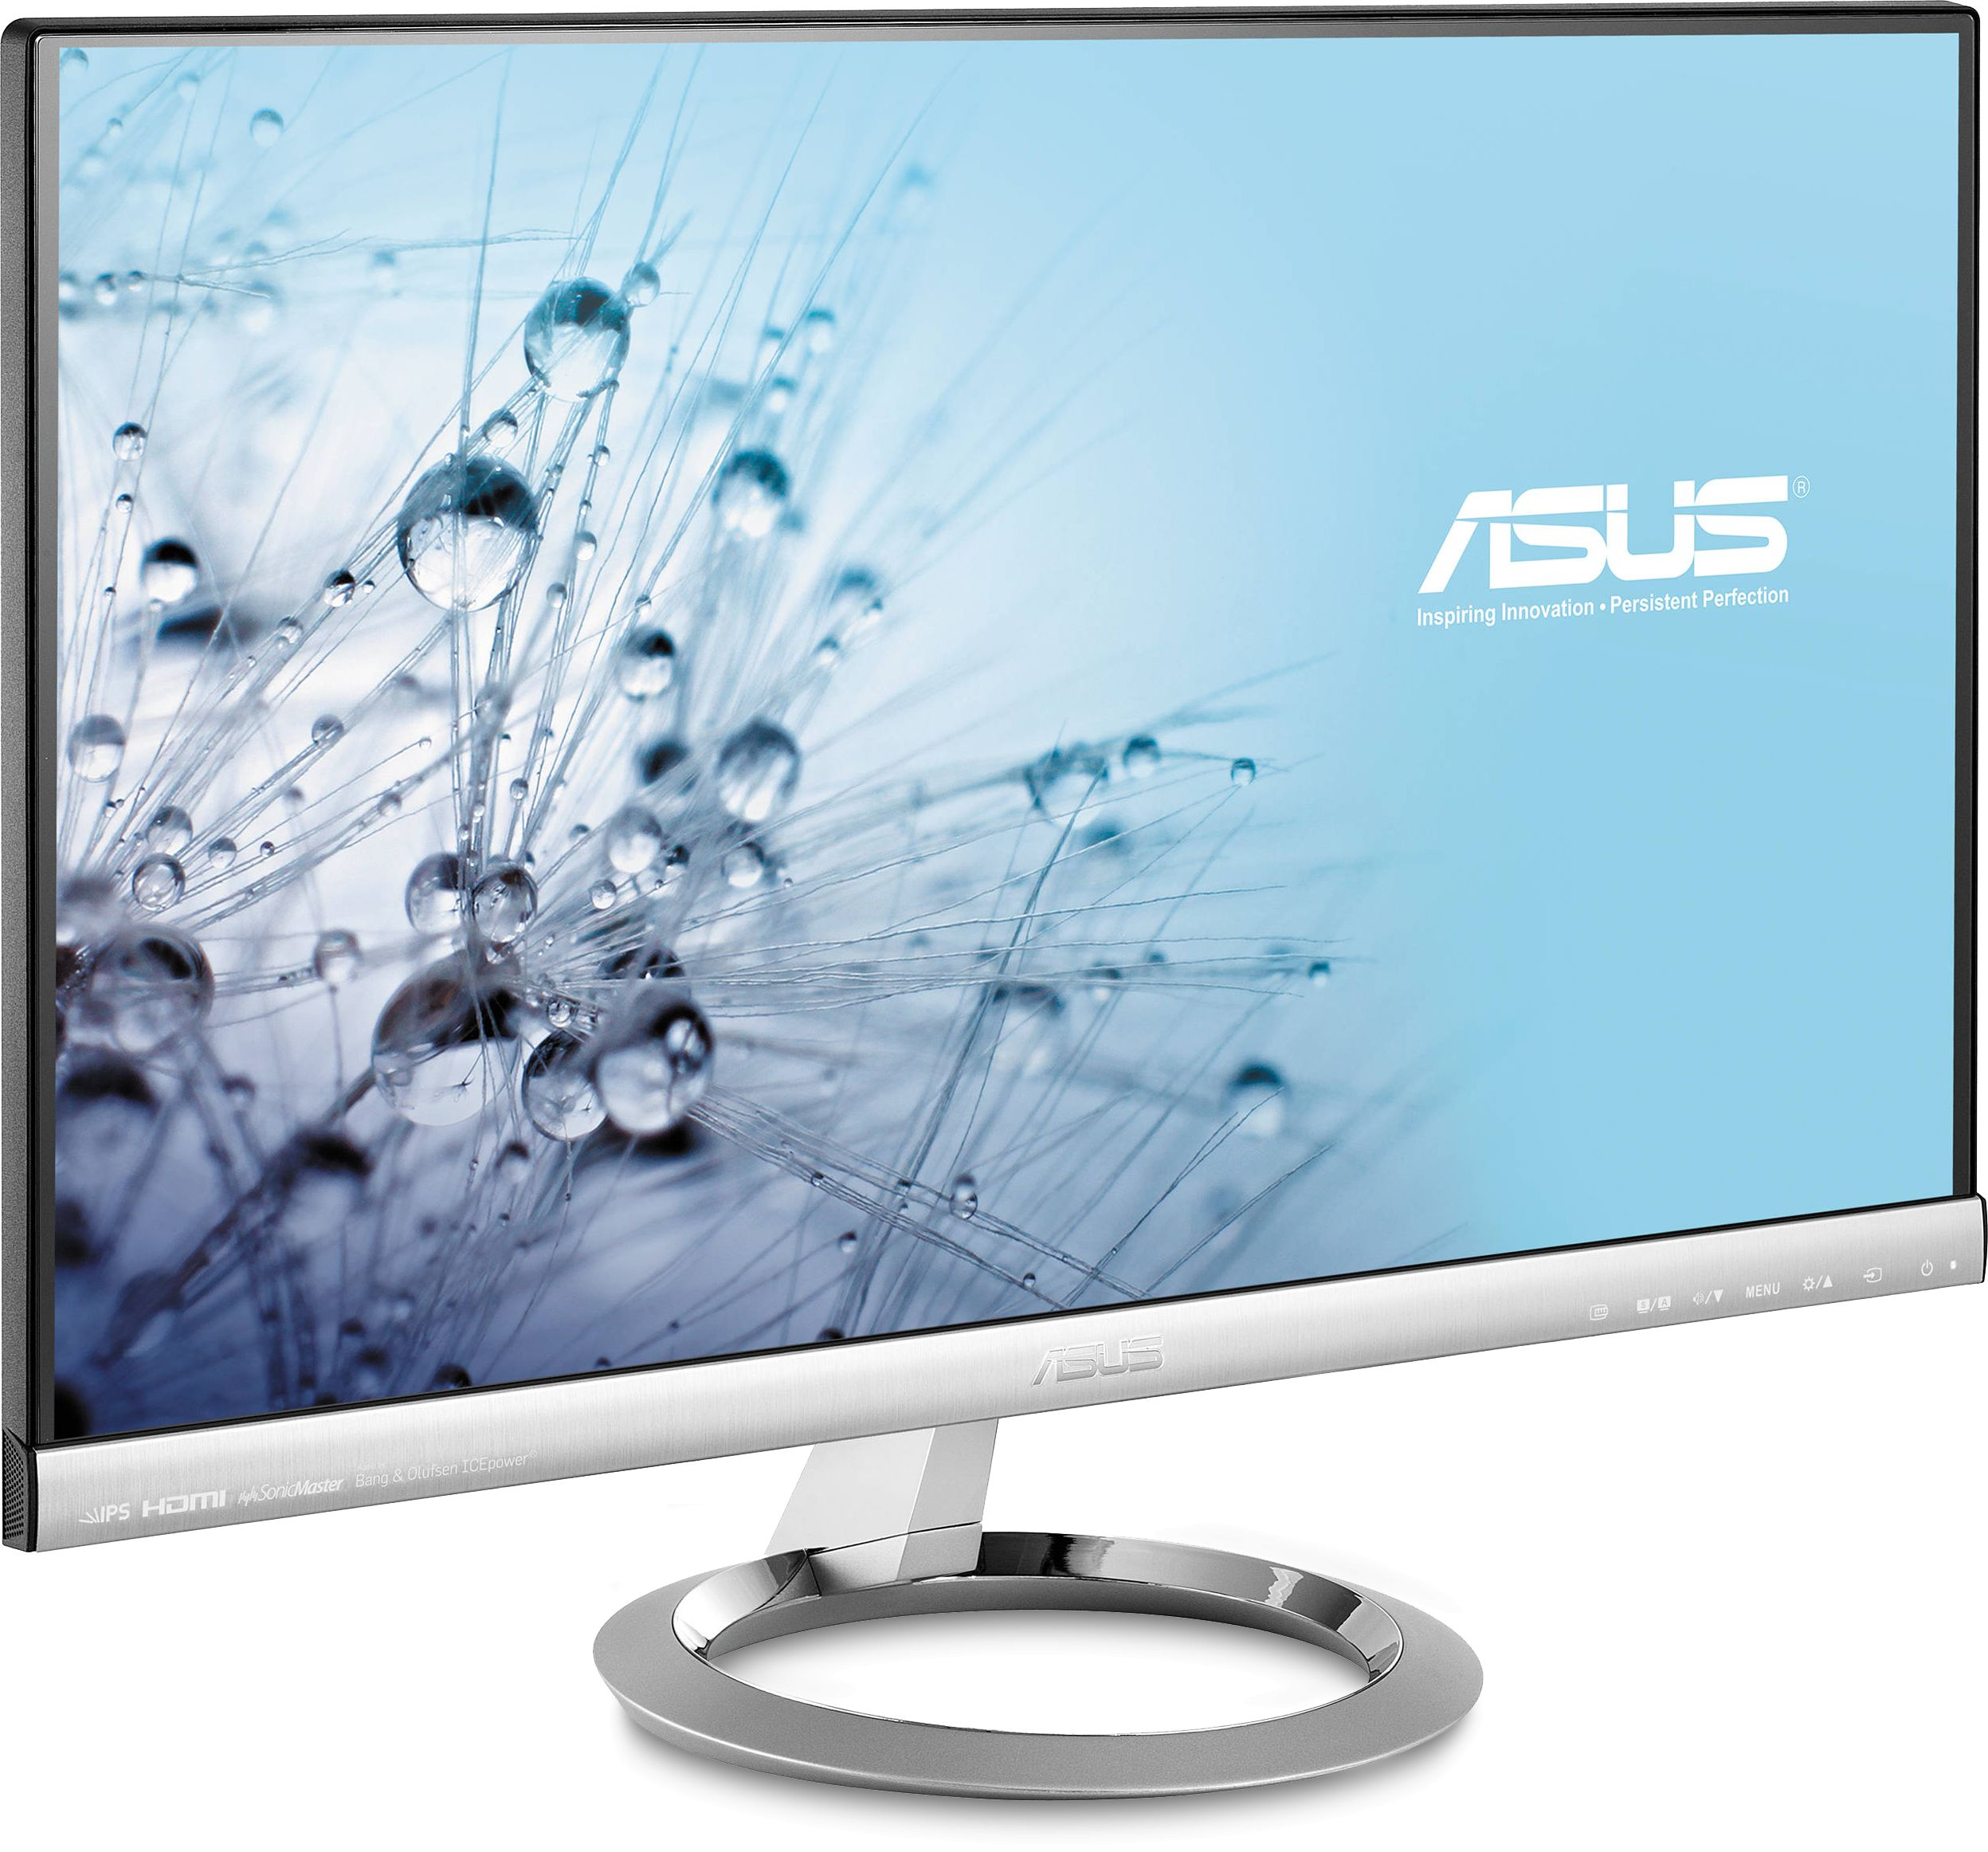 BANG OLUFSEN ICEPOWER ASUS DRIVERS WINDOWS 7